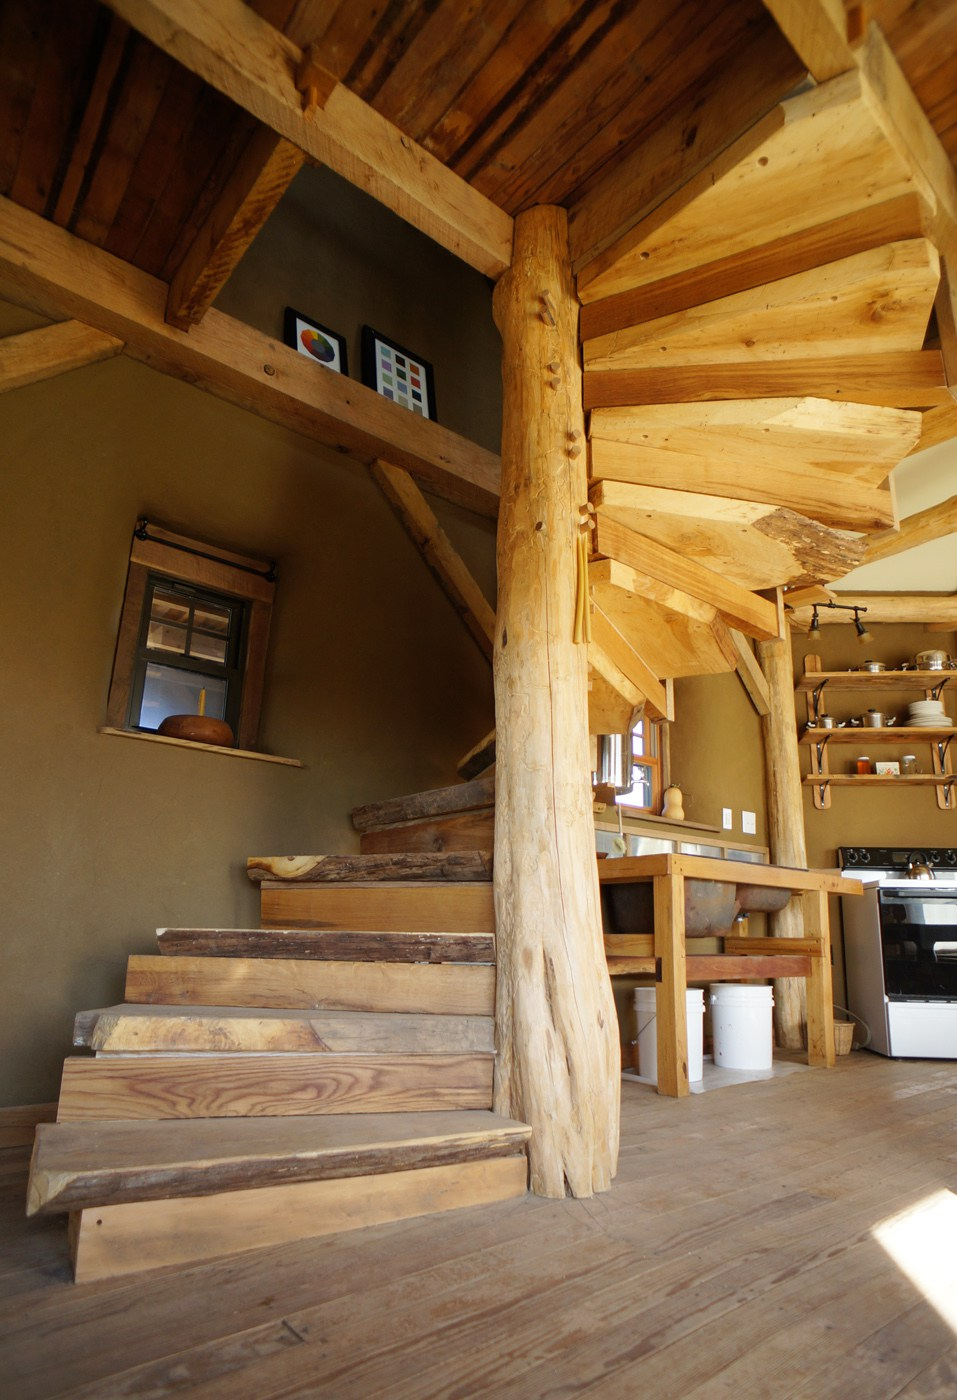 Diy Wooden Spiral Staircase Design How We Built It The Year Of Mud